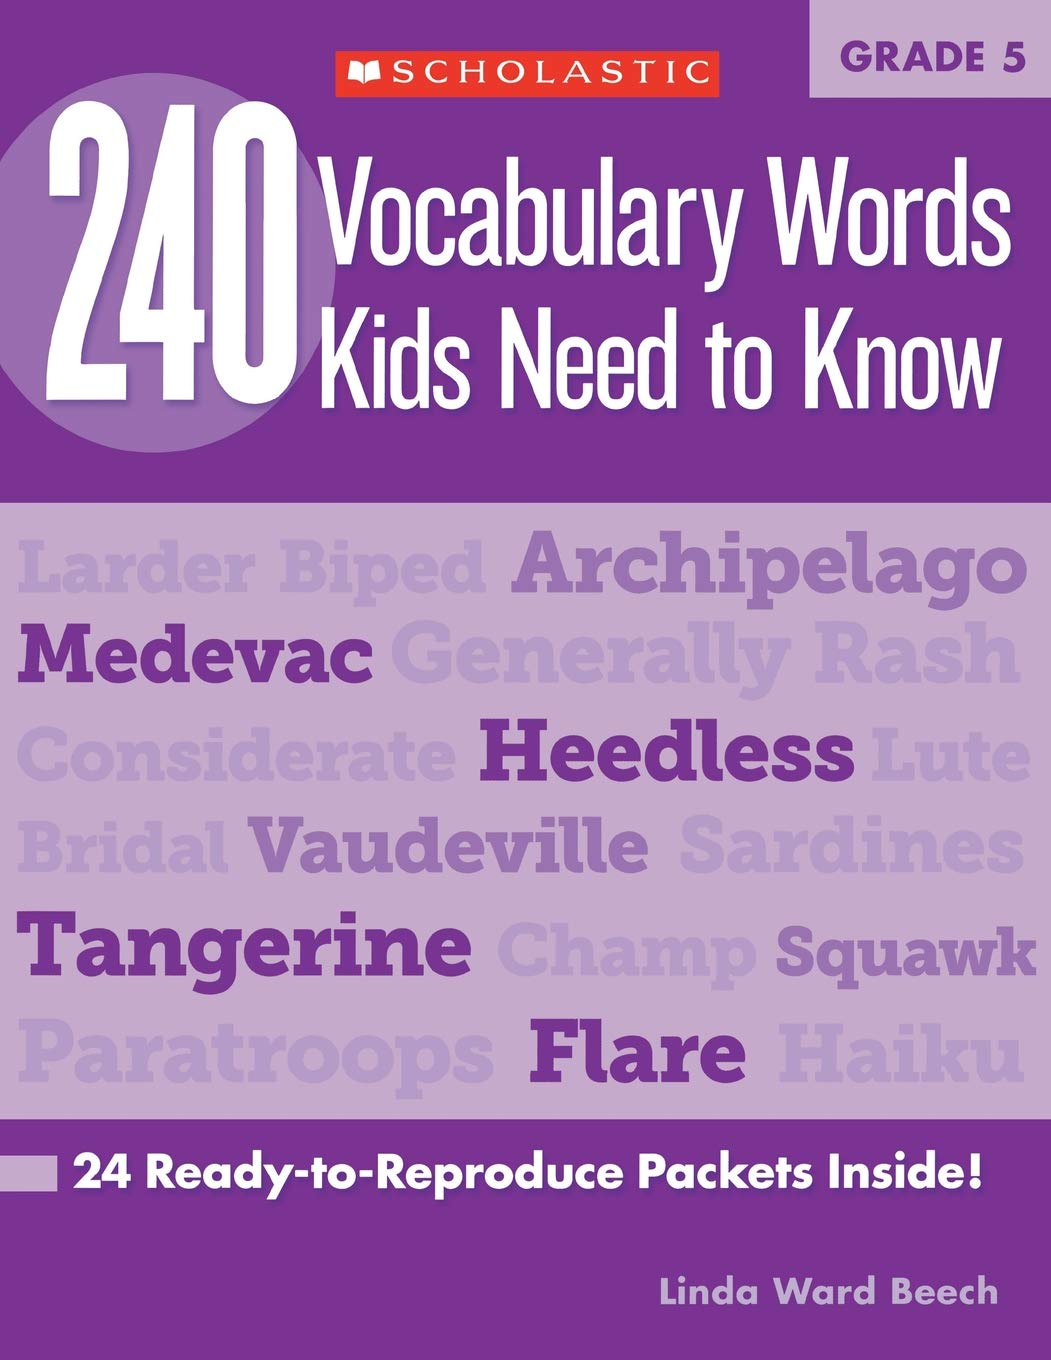 Amazon.com: 240 Vocabulary Words Kids Need to Know: Grade 5: 24  Ready-to-Reproduce Packets Inside! (9780545468657): Linda Beech: Books